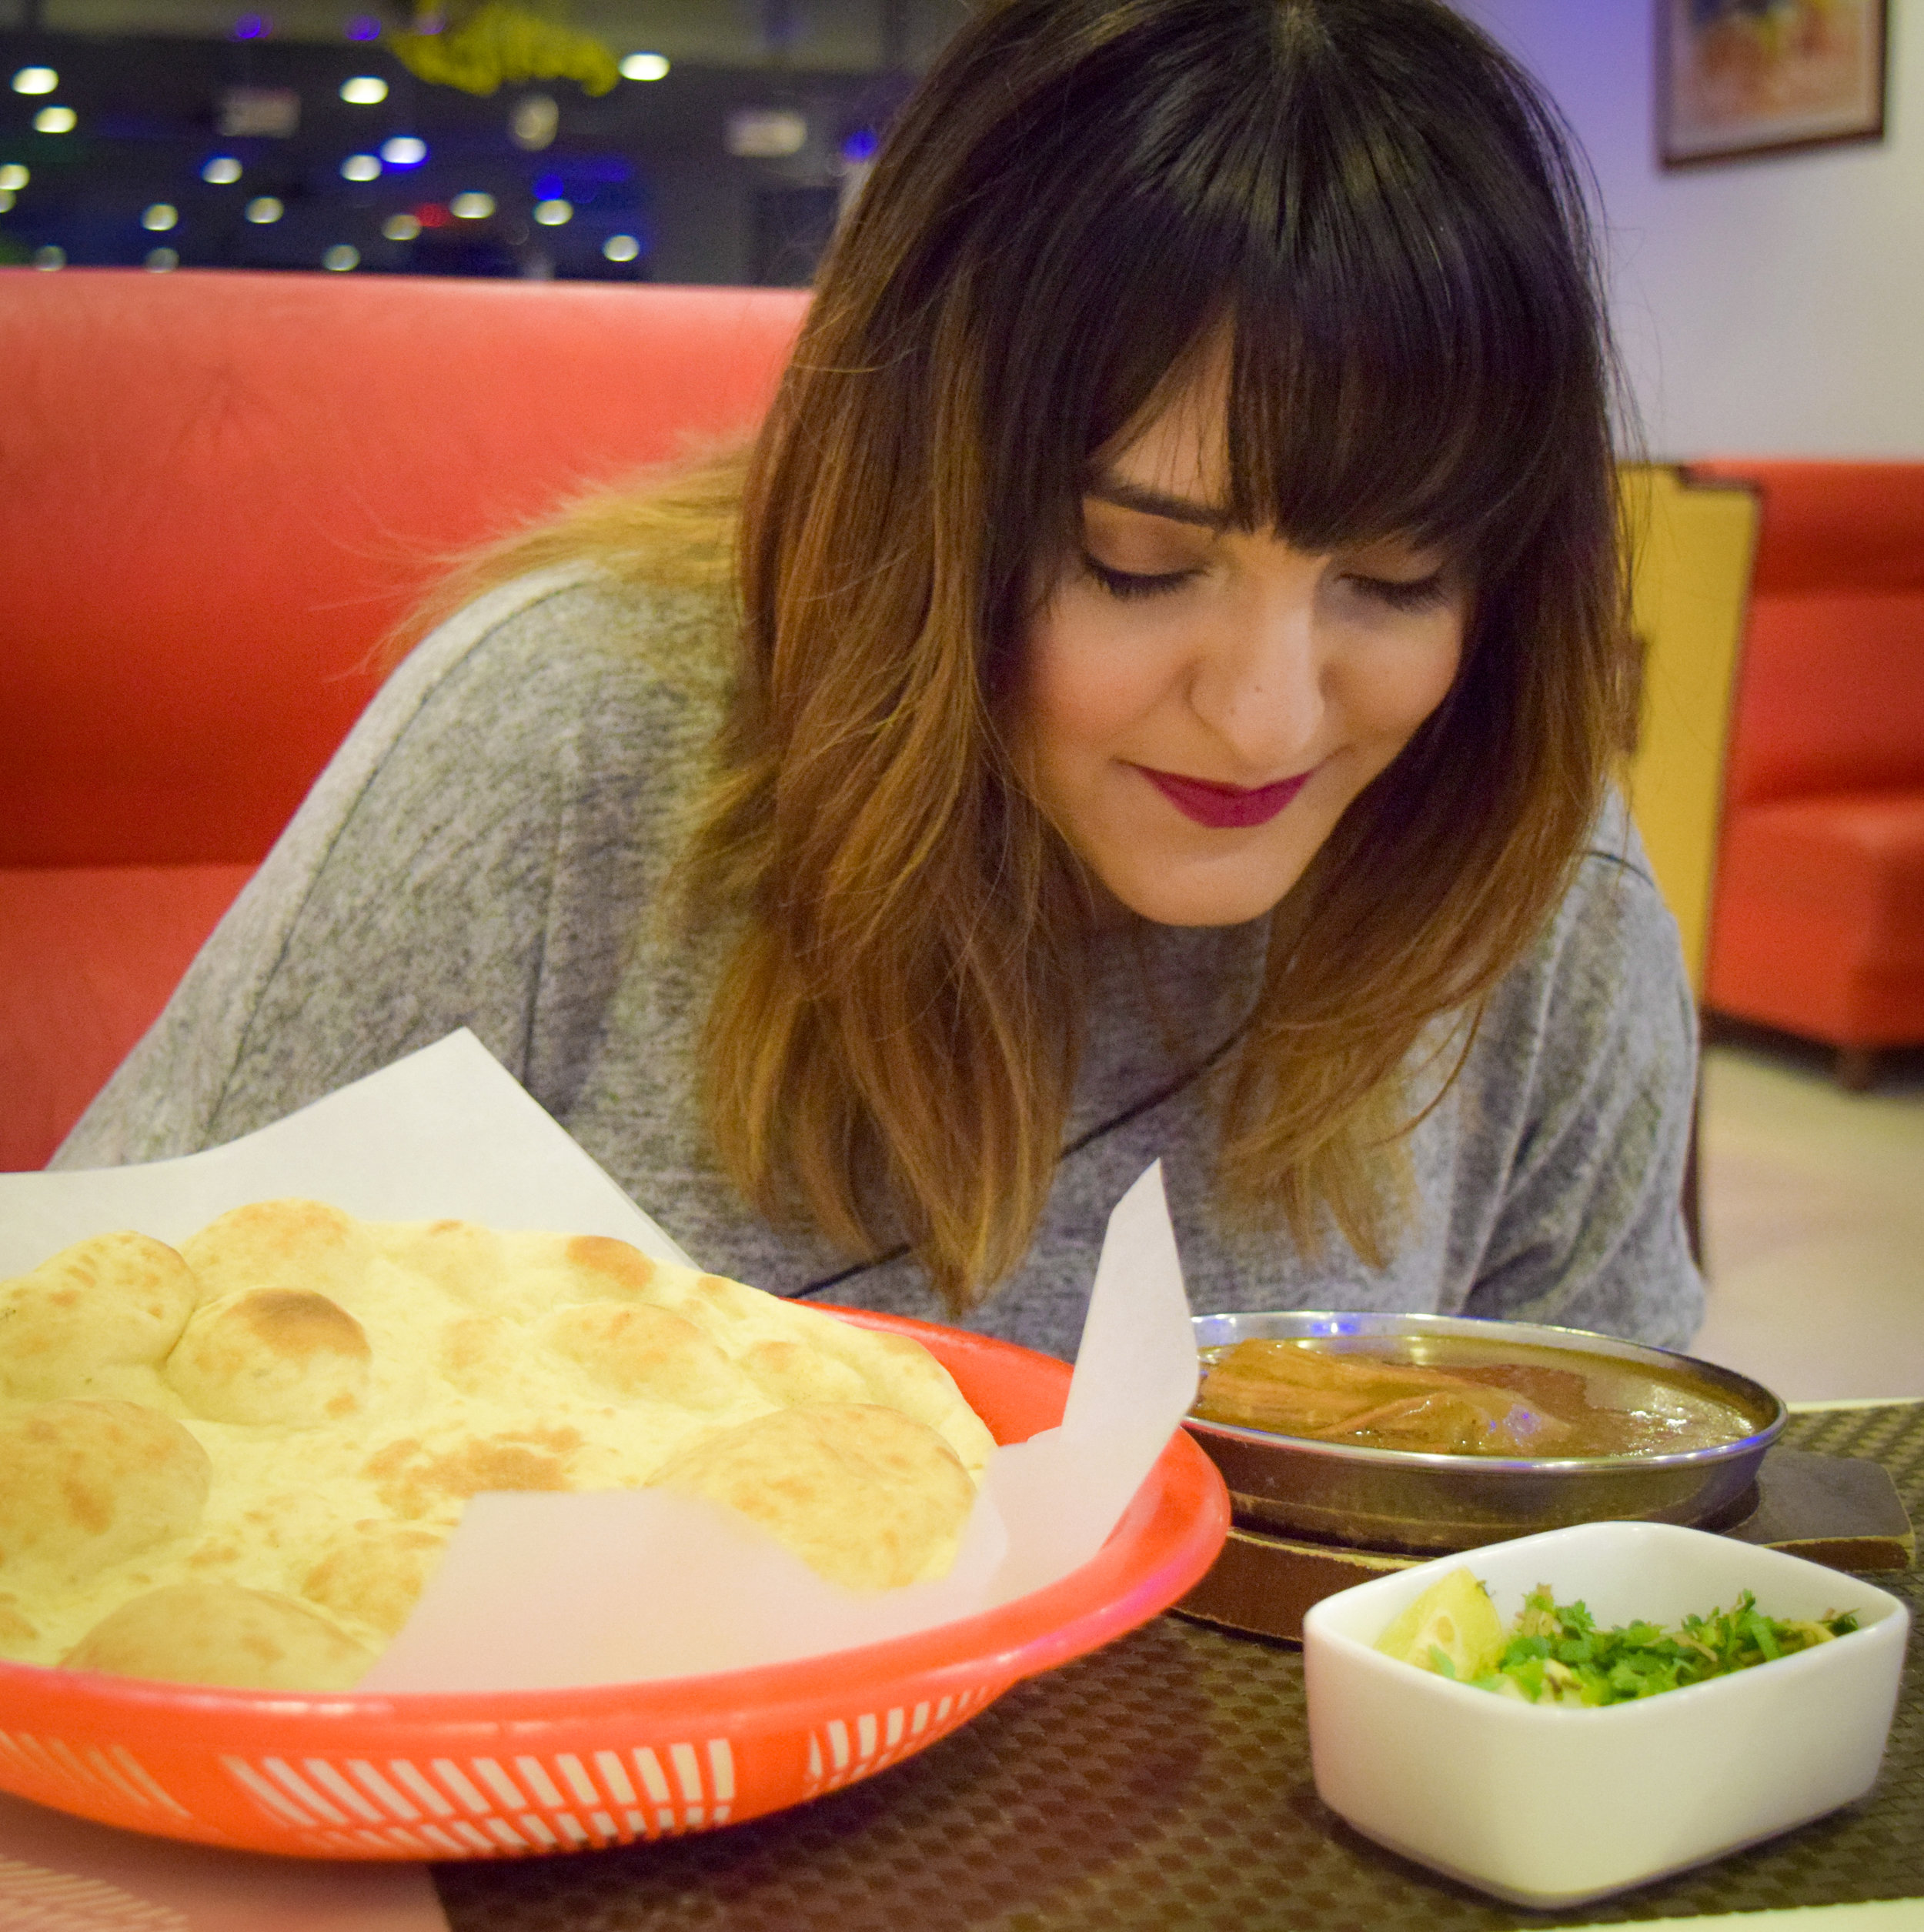 The Aromatic Fried Beef Nihari - This Nihari is bound to give you Cholestrol for sure. But as soon as you have the plate in front of you, the aroma envelopes you and you can't wait to devour the whole plate with no second thought. LOVED IT!